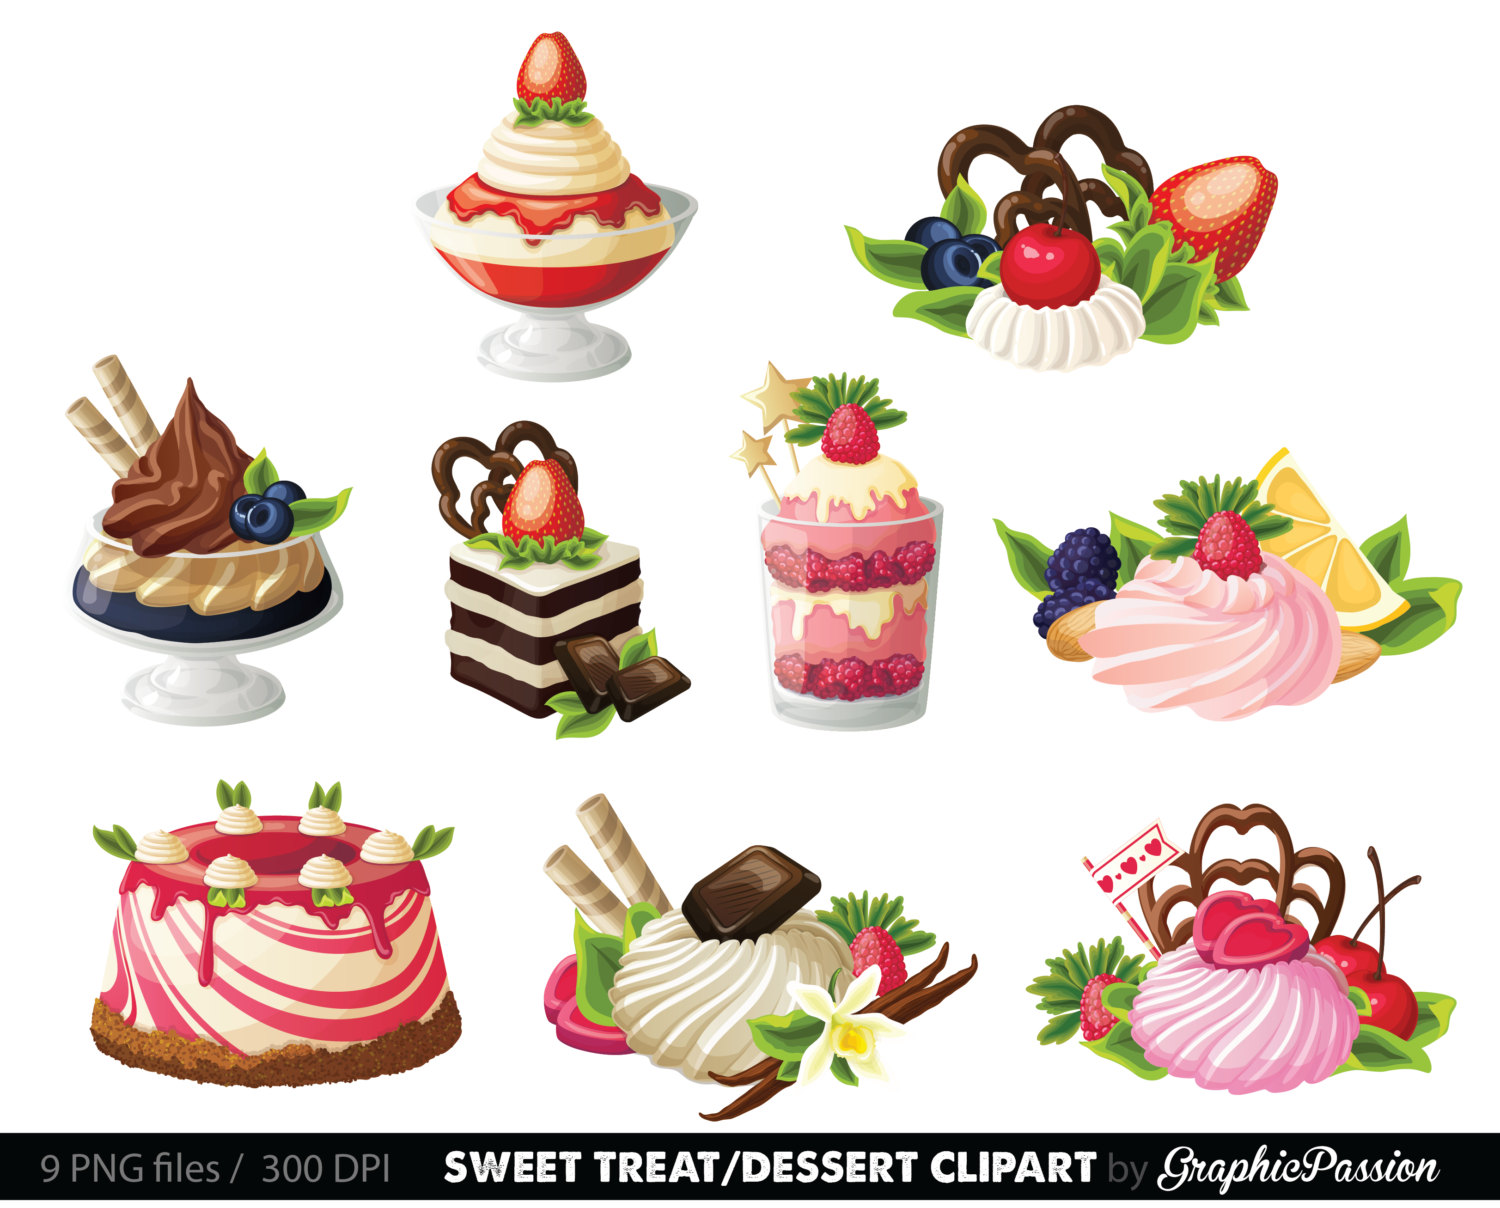 Holiday pastries clipart 20 free Cliparts | Download ...